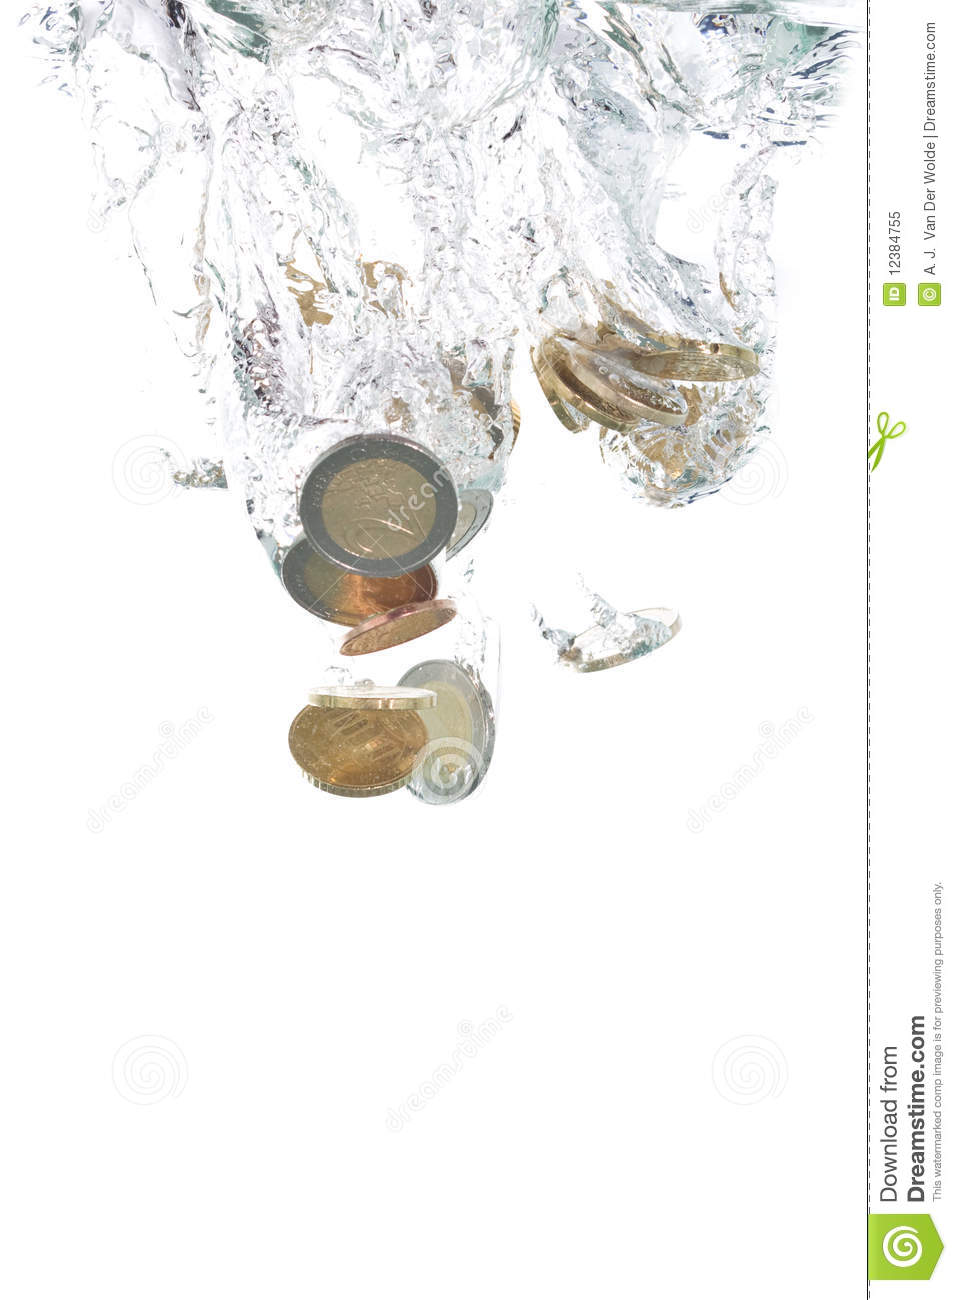 Euro coins falling into the water